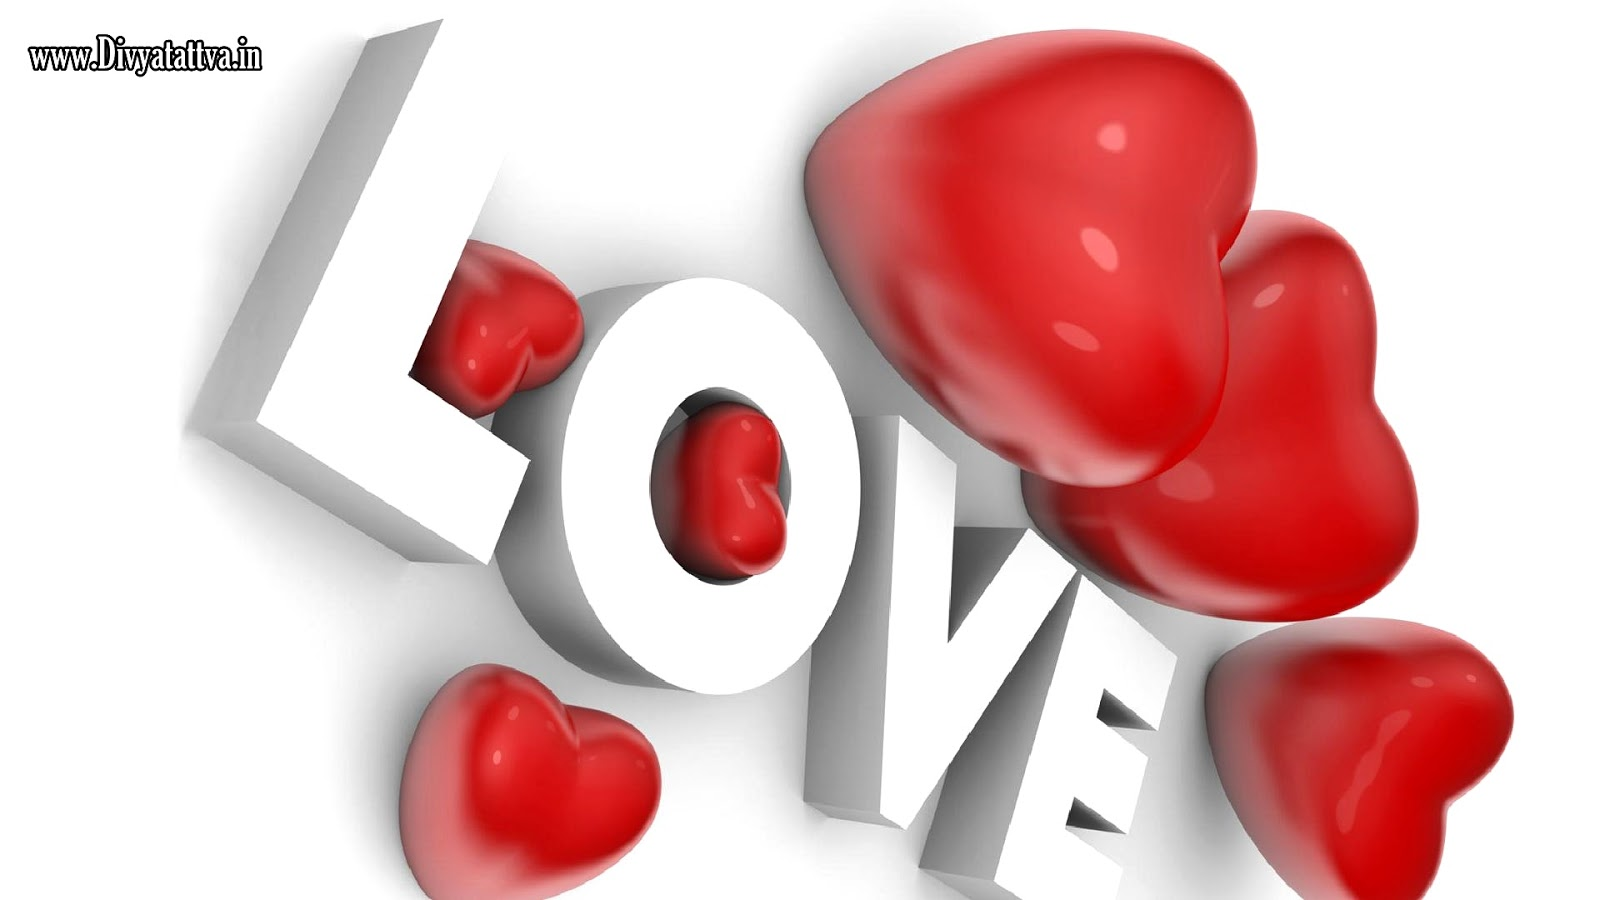 romantic love wallpapers, love wallpapers with messages , download hd love wallpaper for mobile,